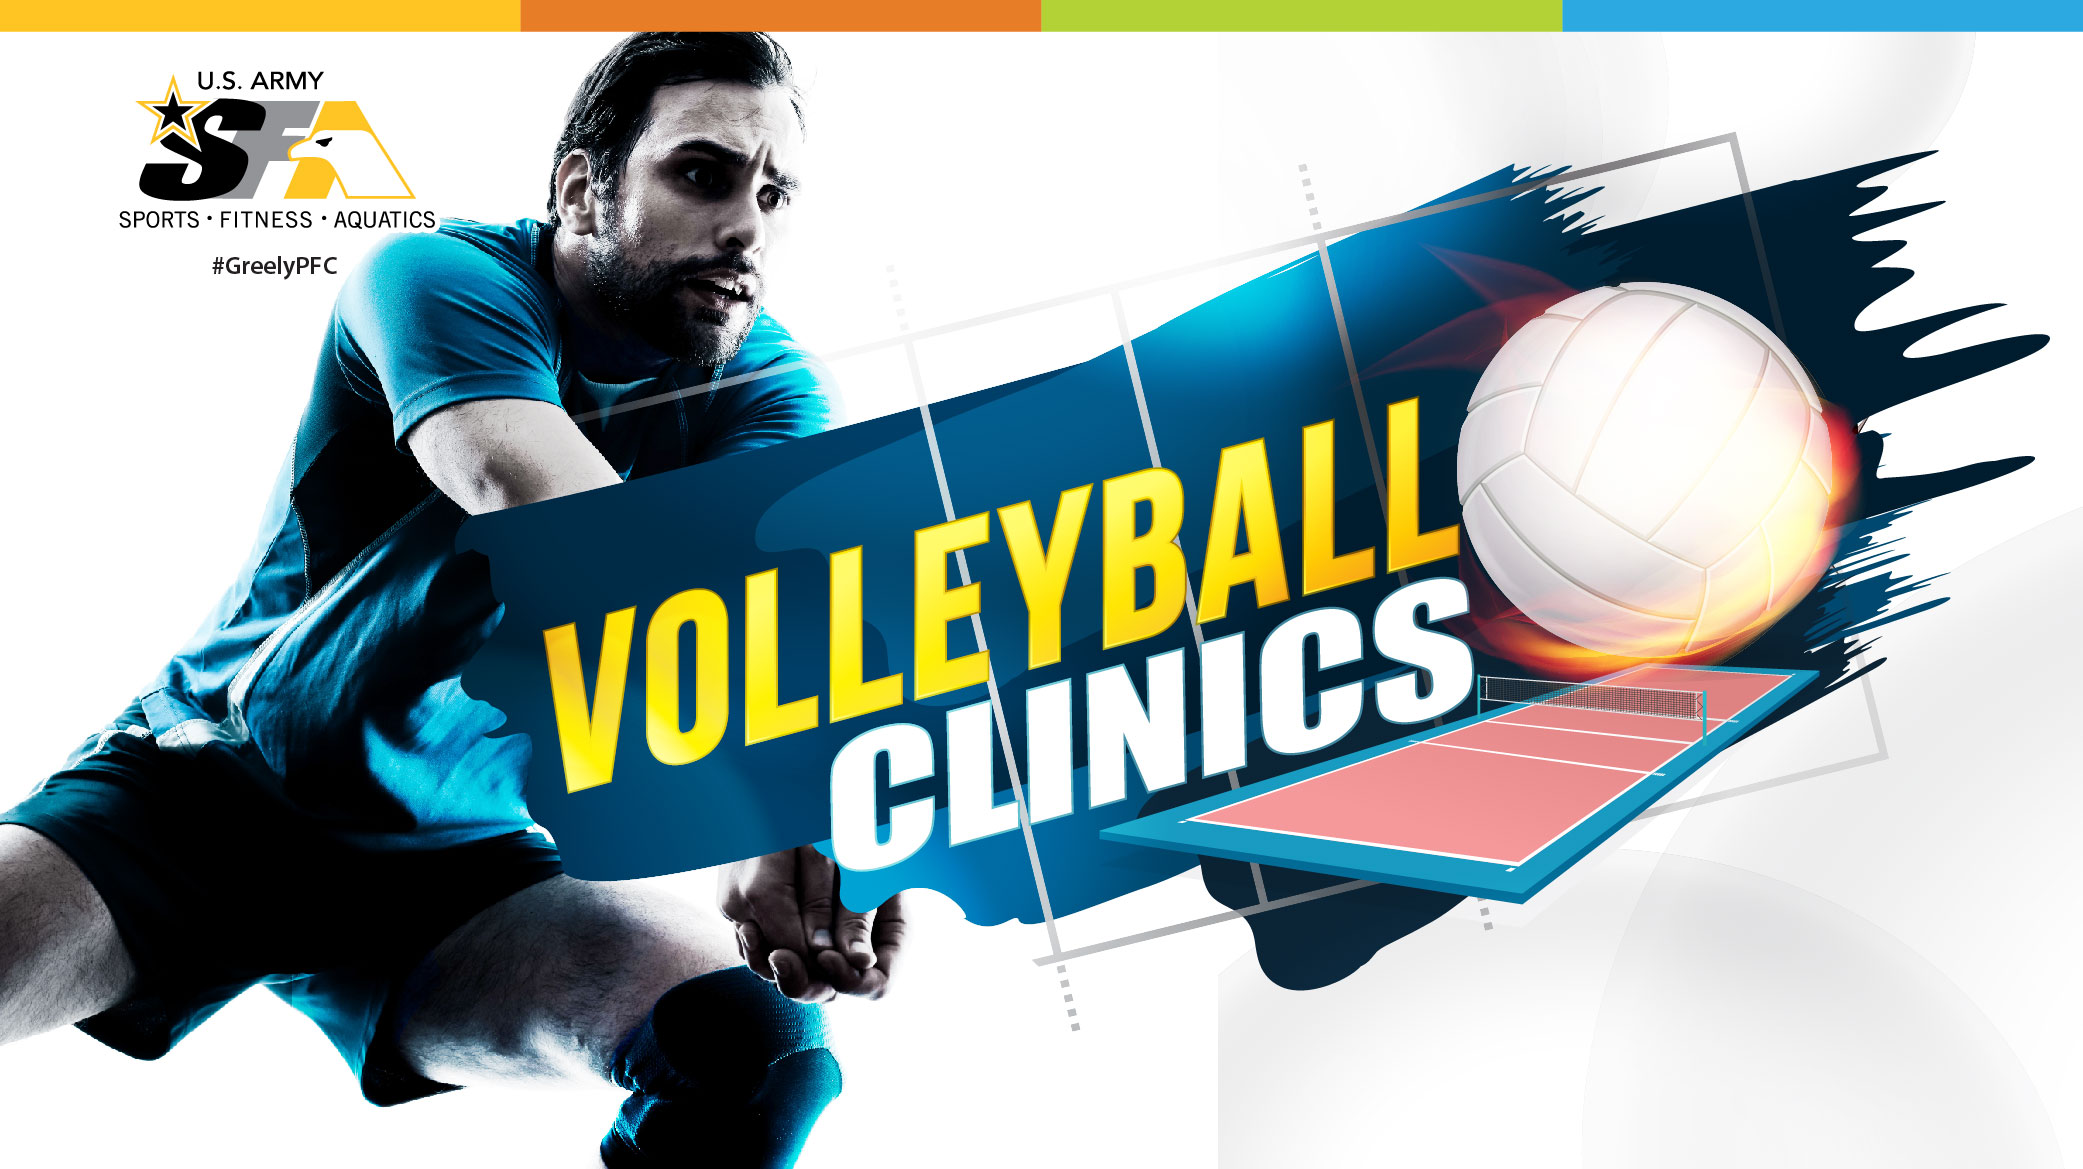 Volleyball Clinics